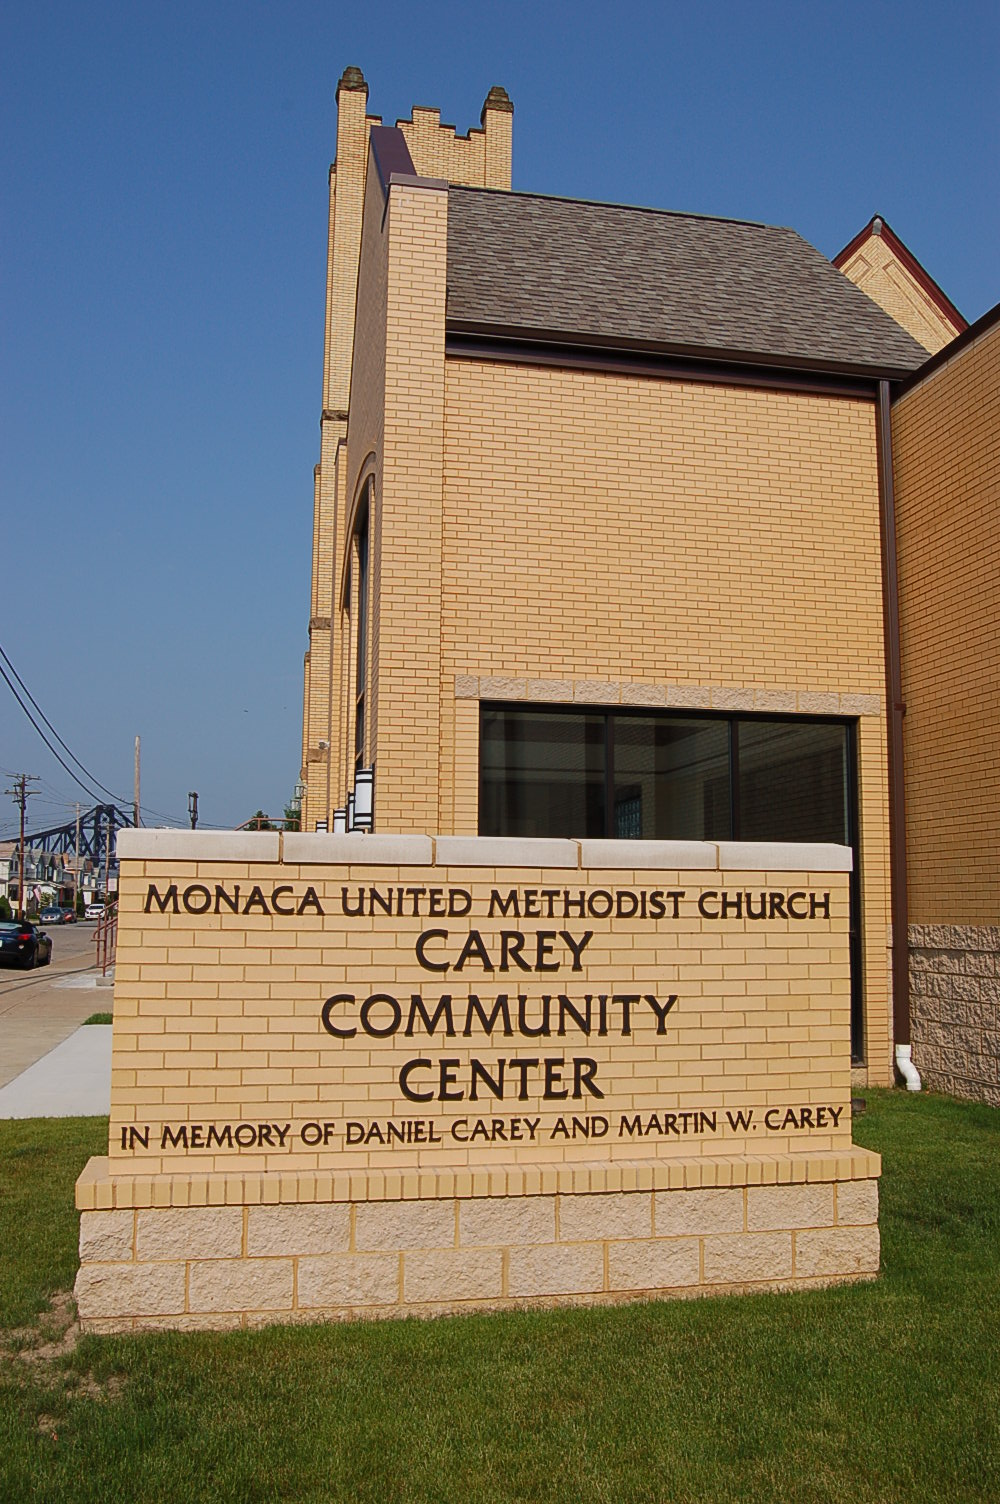 The Carey Community Center addition at the Monaca United Methodist Church